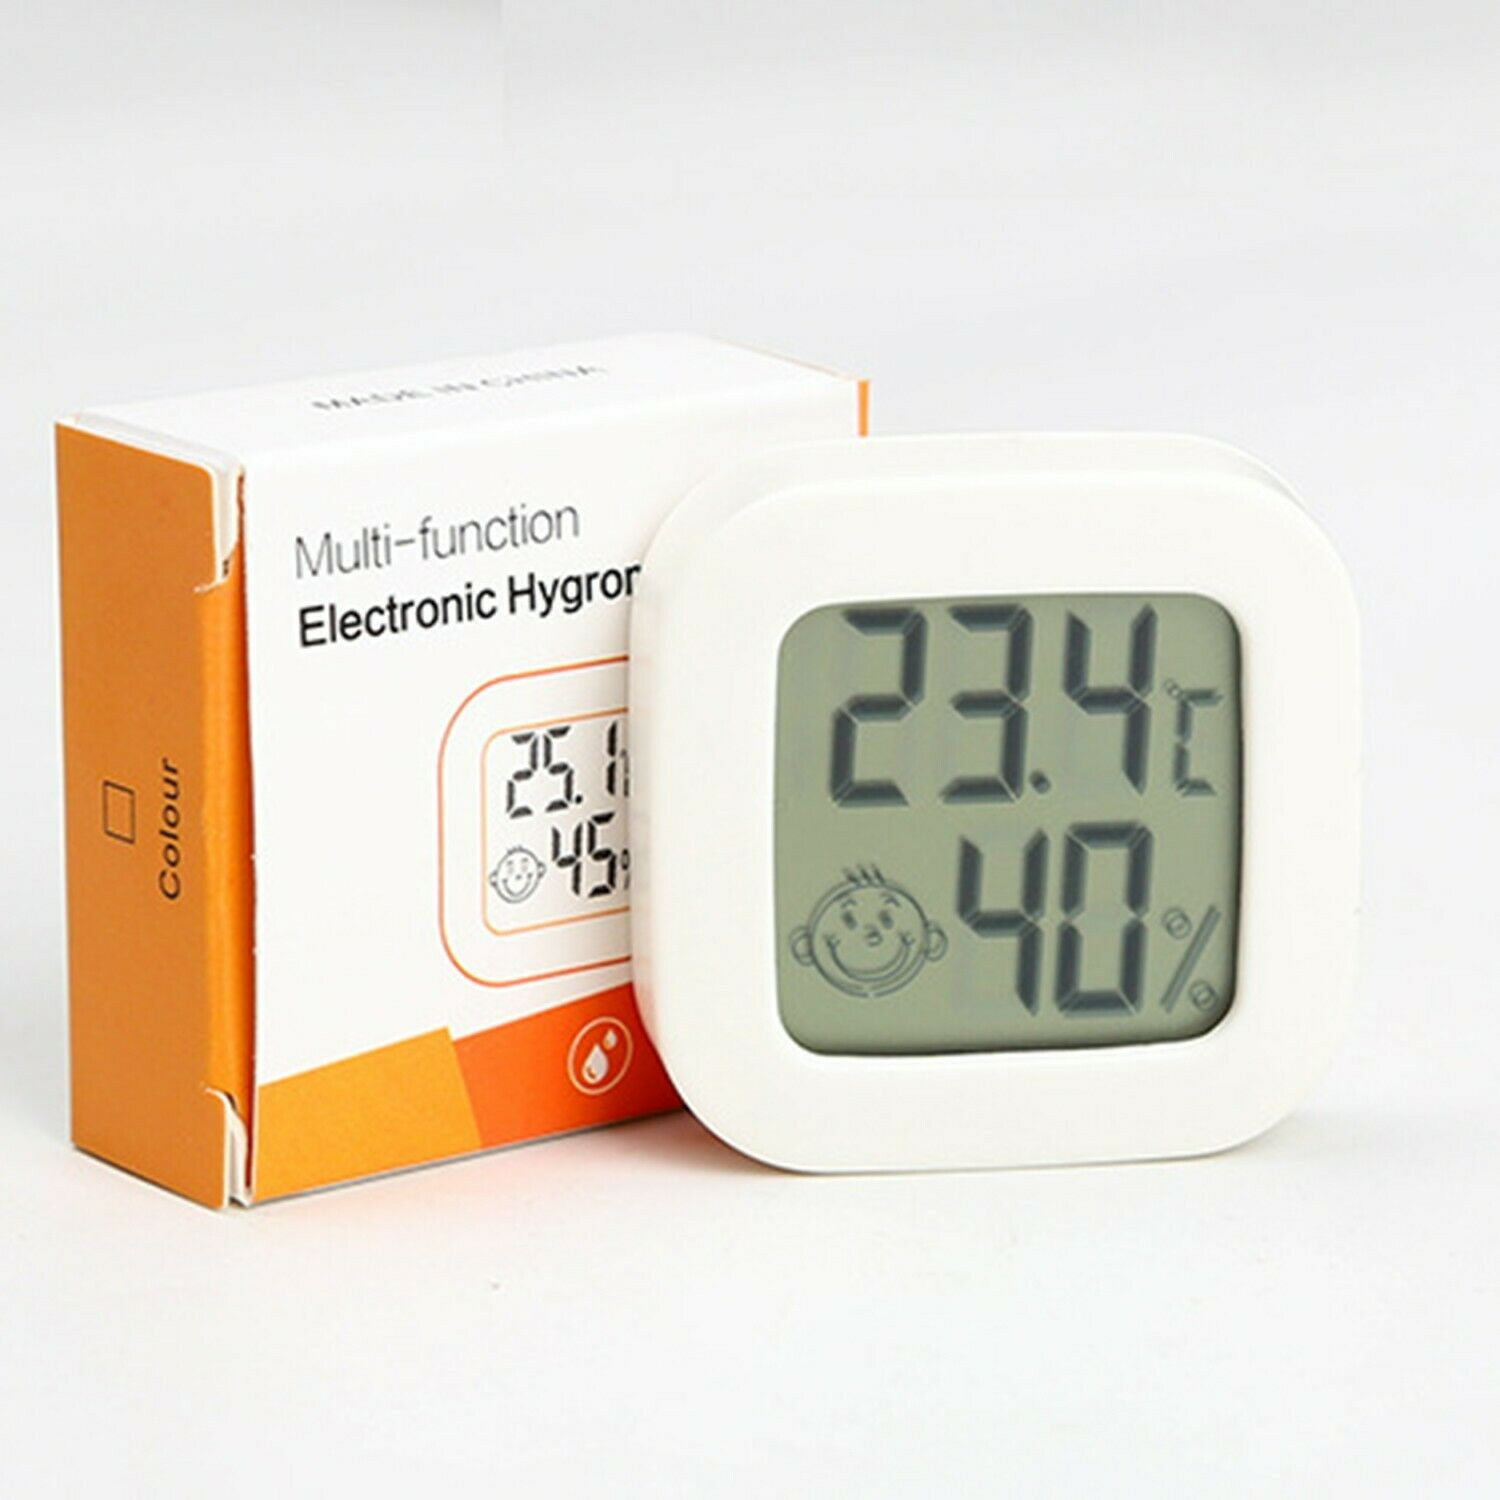 Temperature Thermometer Hygrometer Tools Accessory Desktop Elements Humidity